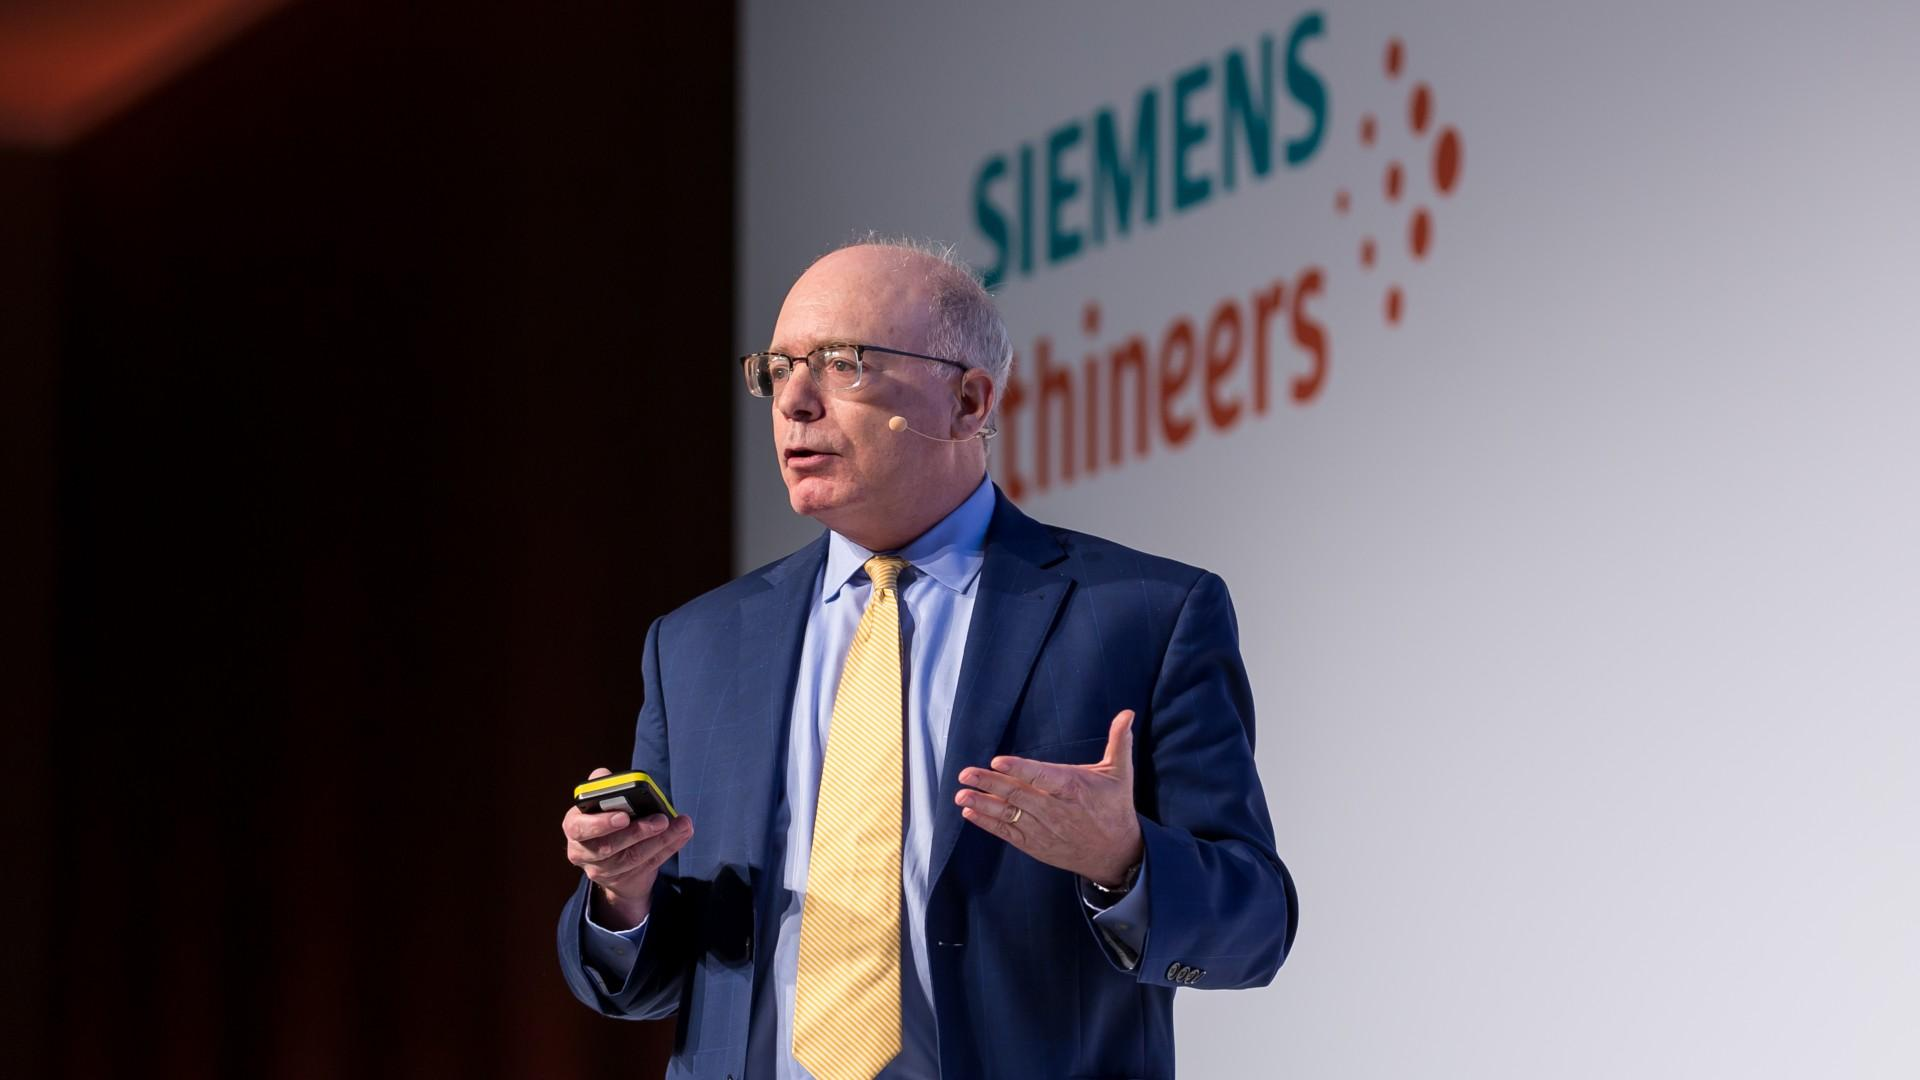 David Asch at the Siemens Healthineers Executive Summit 2019 in Amsterdam